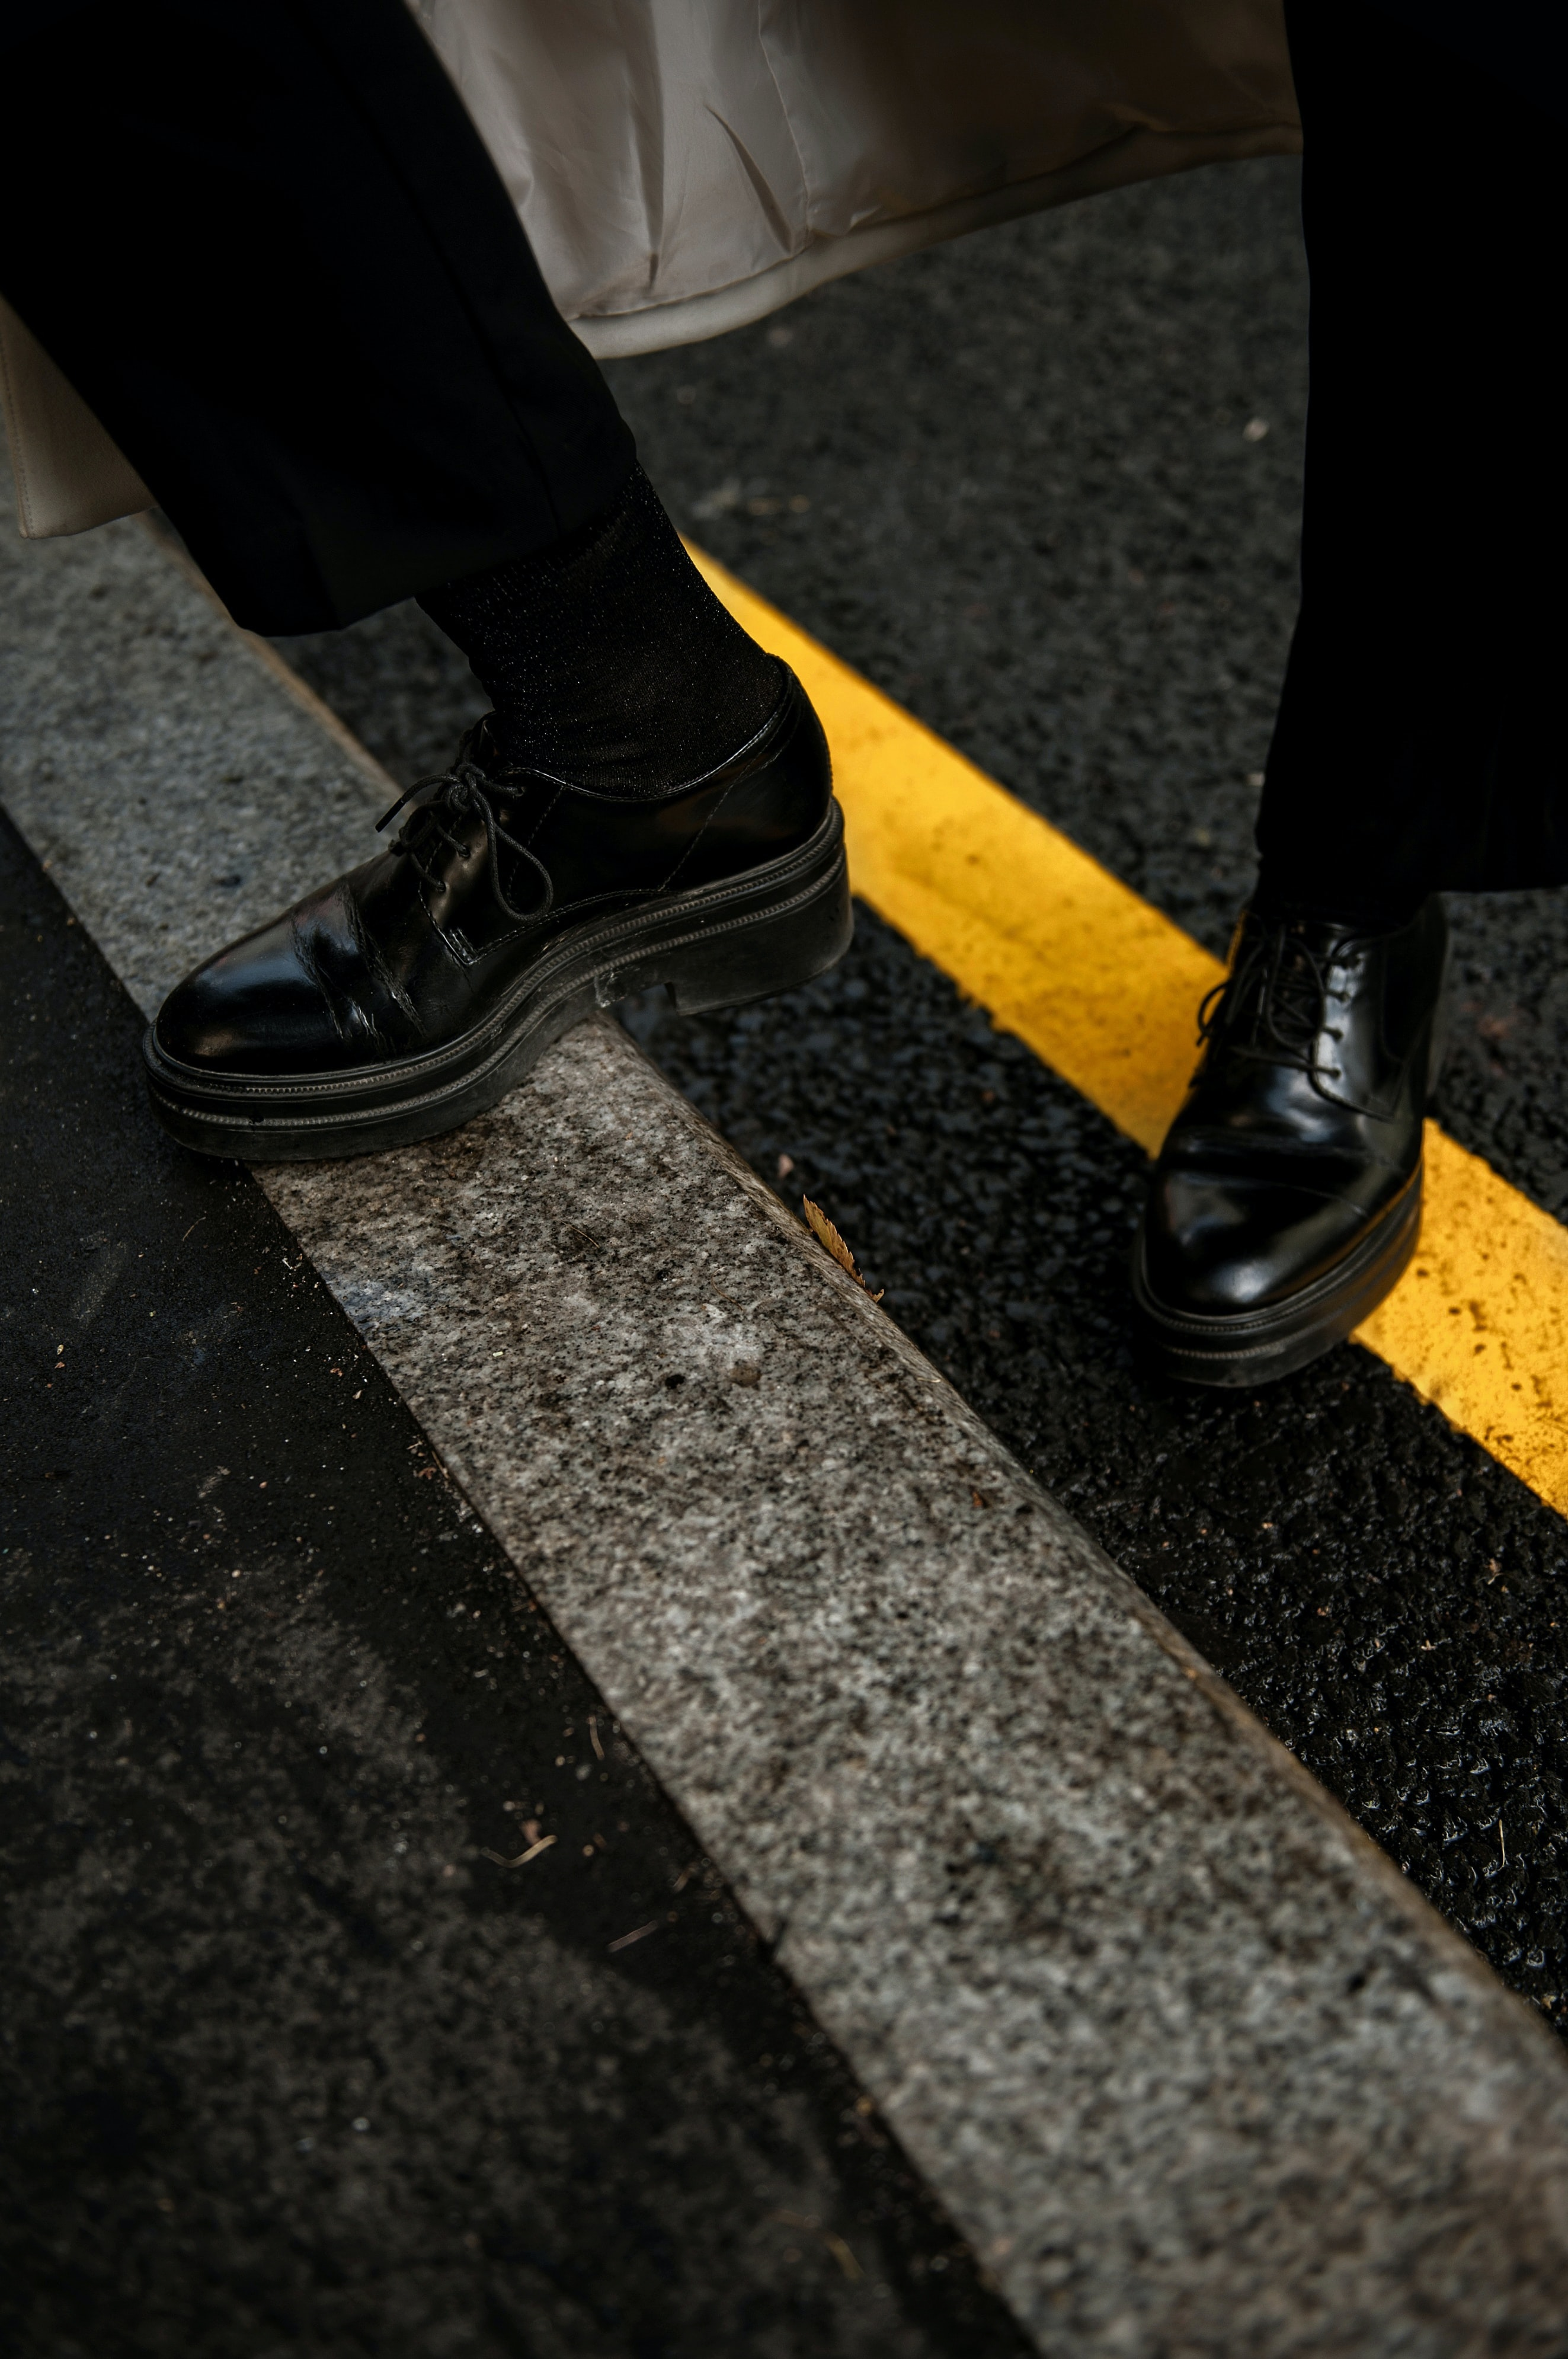 person wearing black patent leather dress shoes